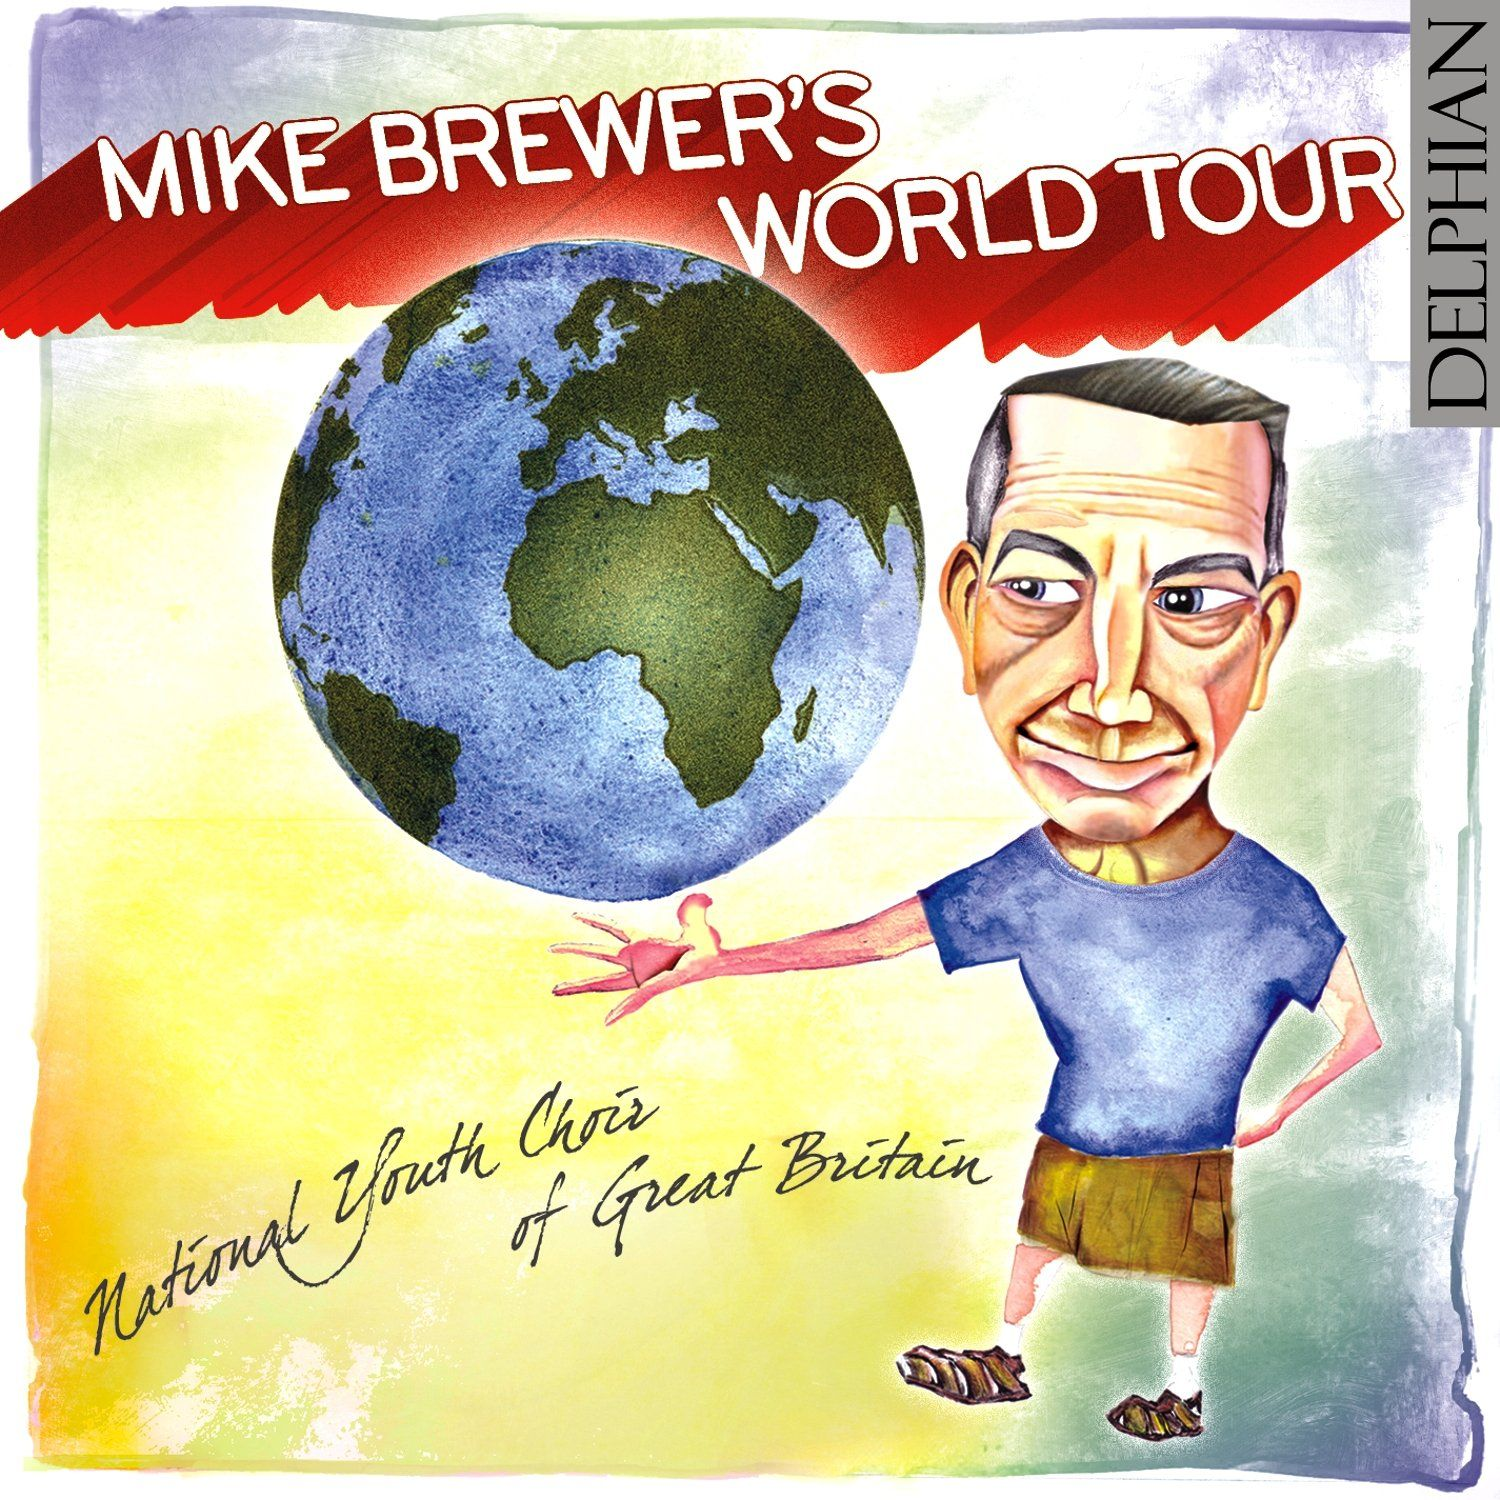 Mike Brewer's World Tour CD Delphian Records